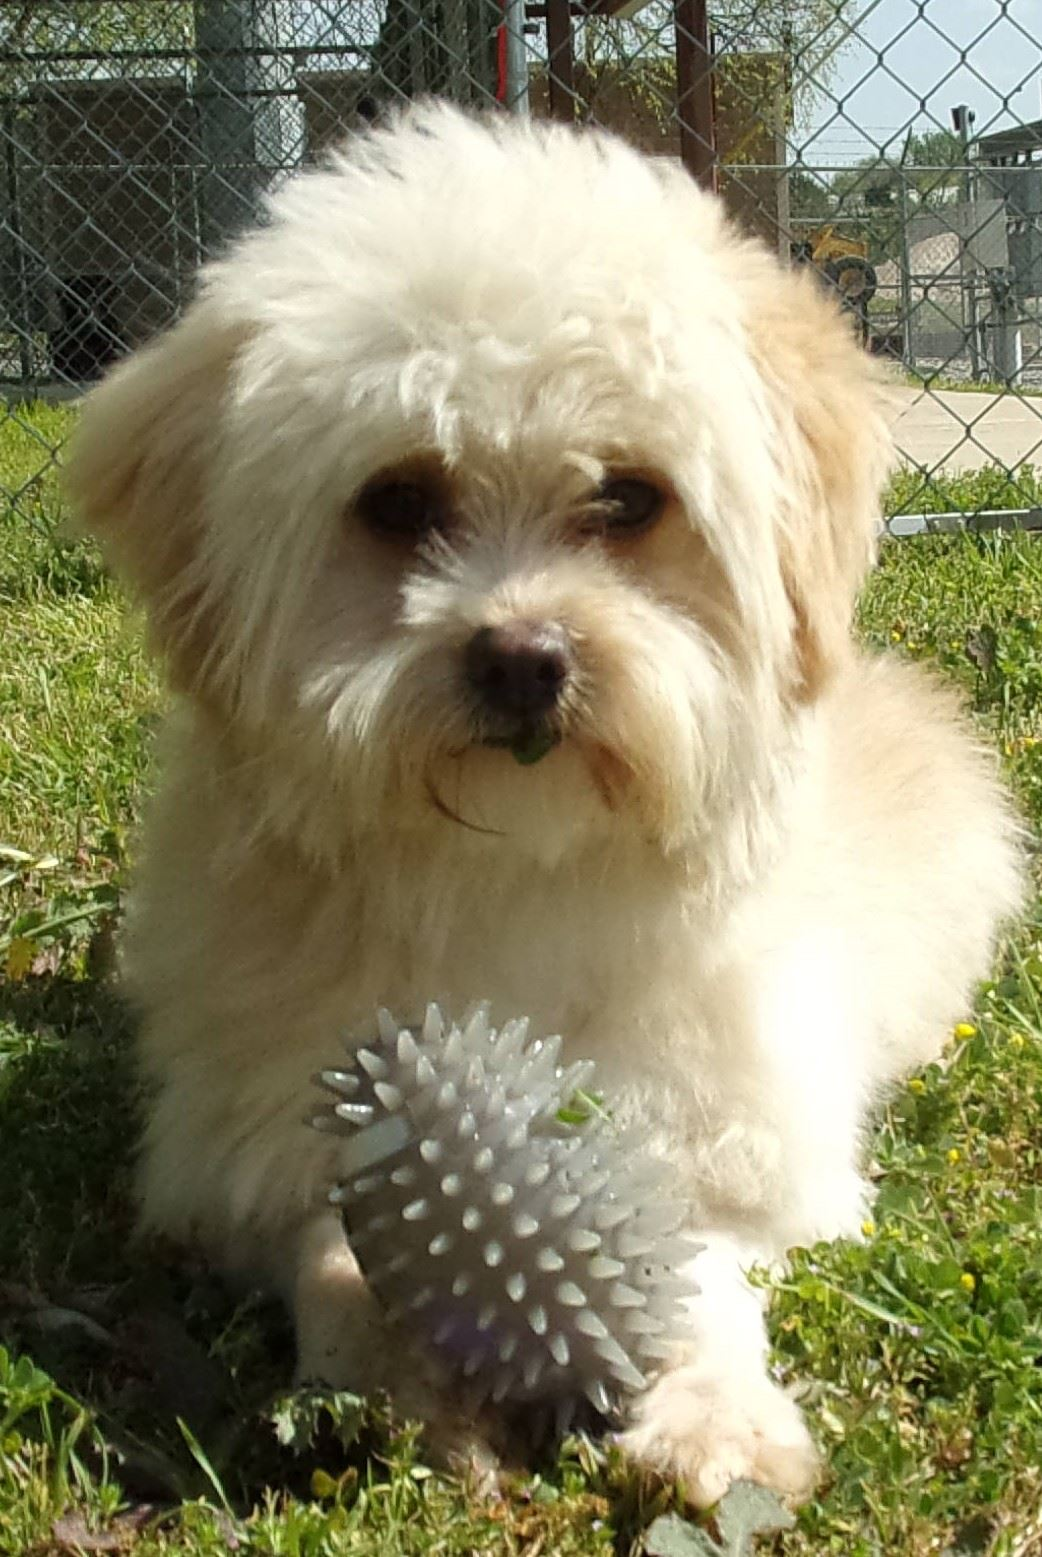 19-148 Washington cream colored male Shih Tzu